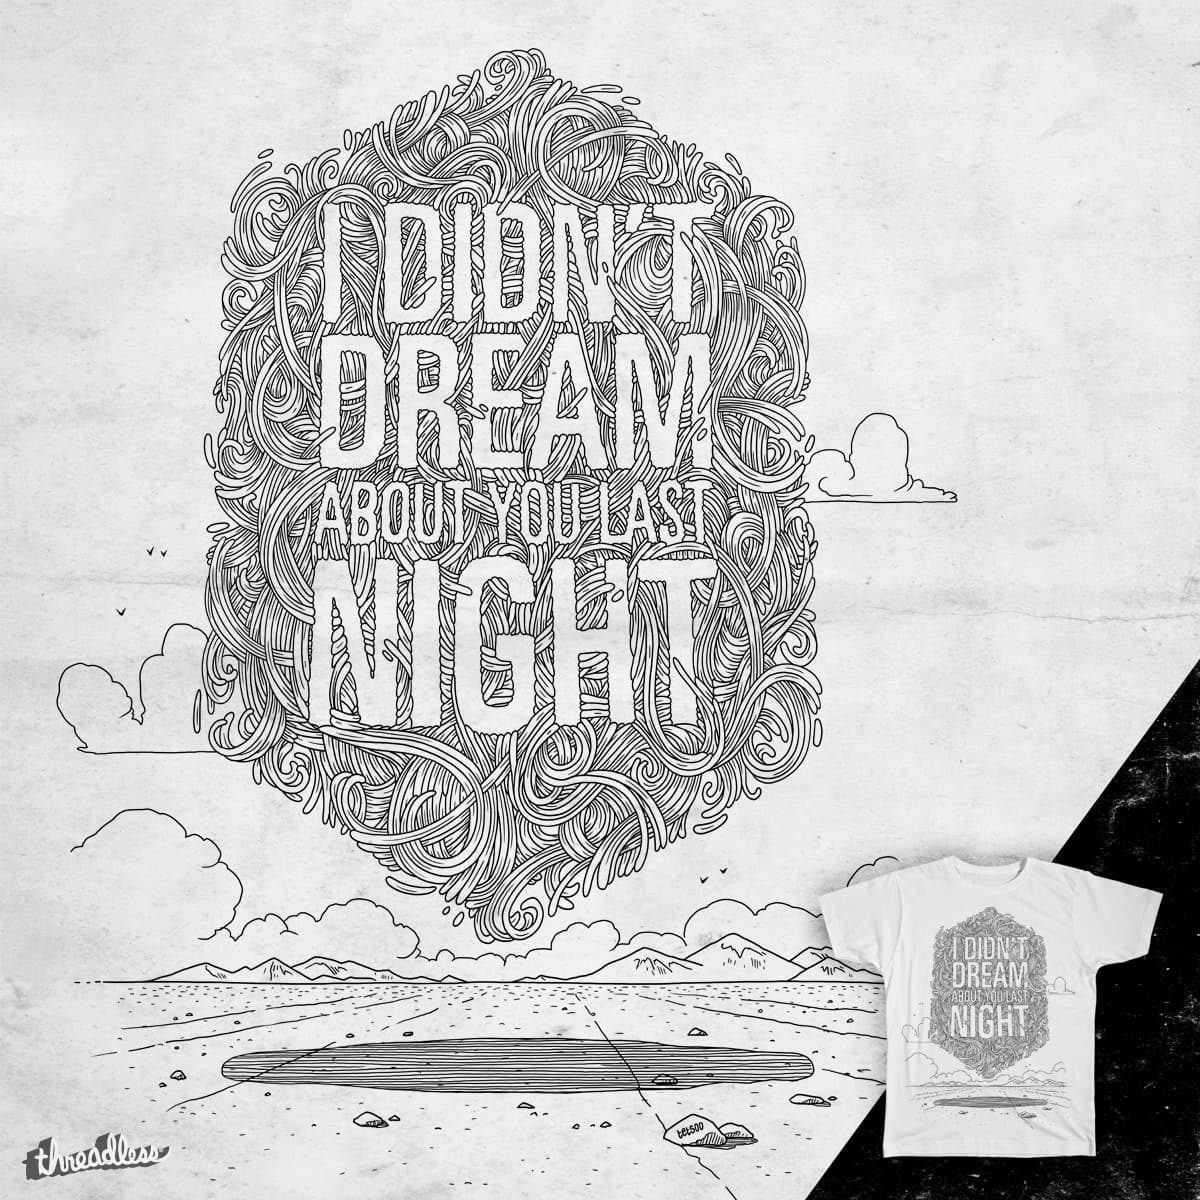 I didn't dream about you last night by tetsoo on Threadless